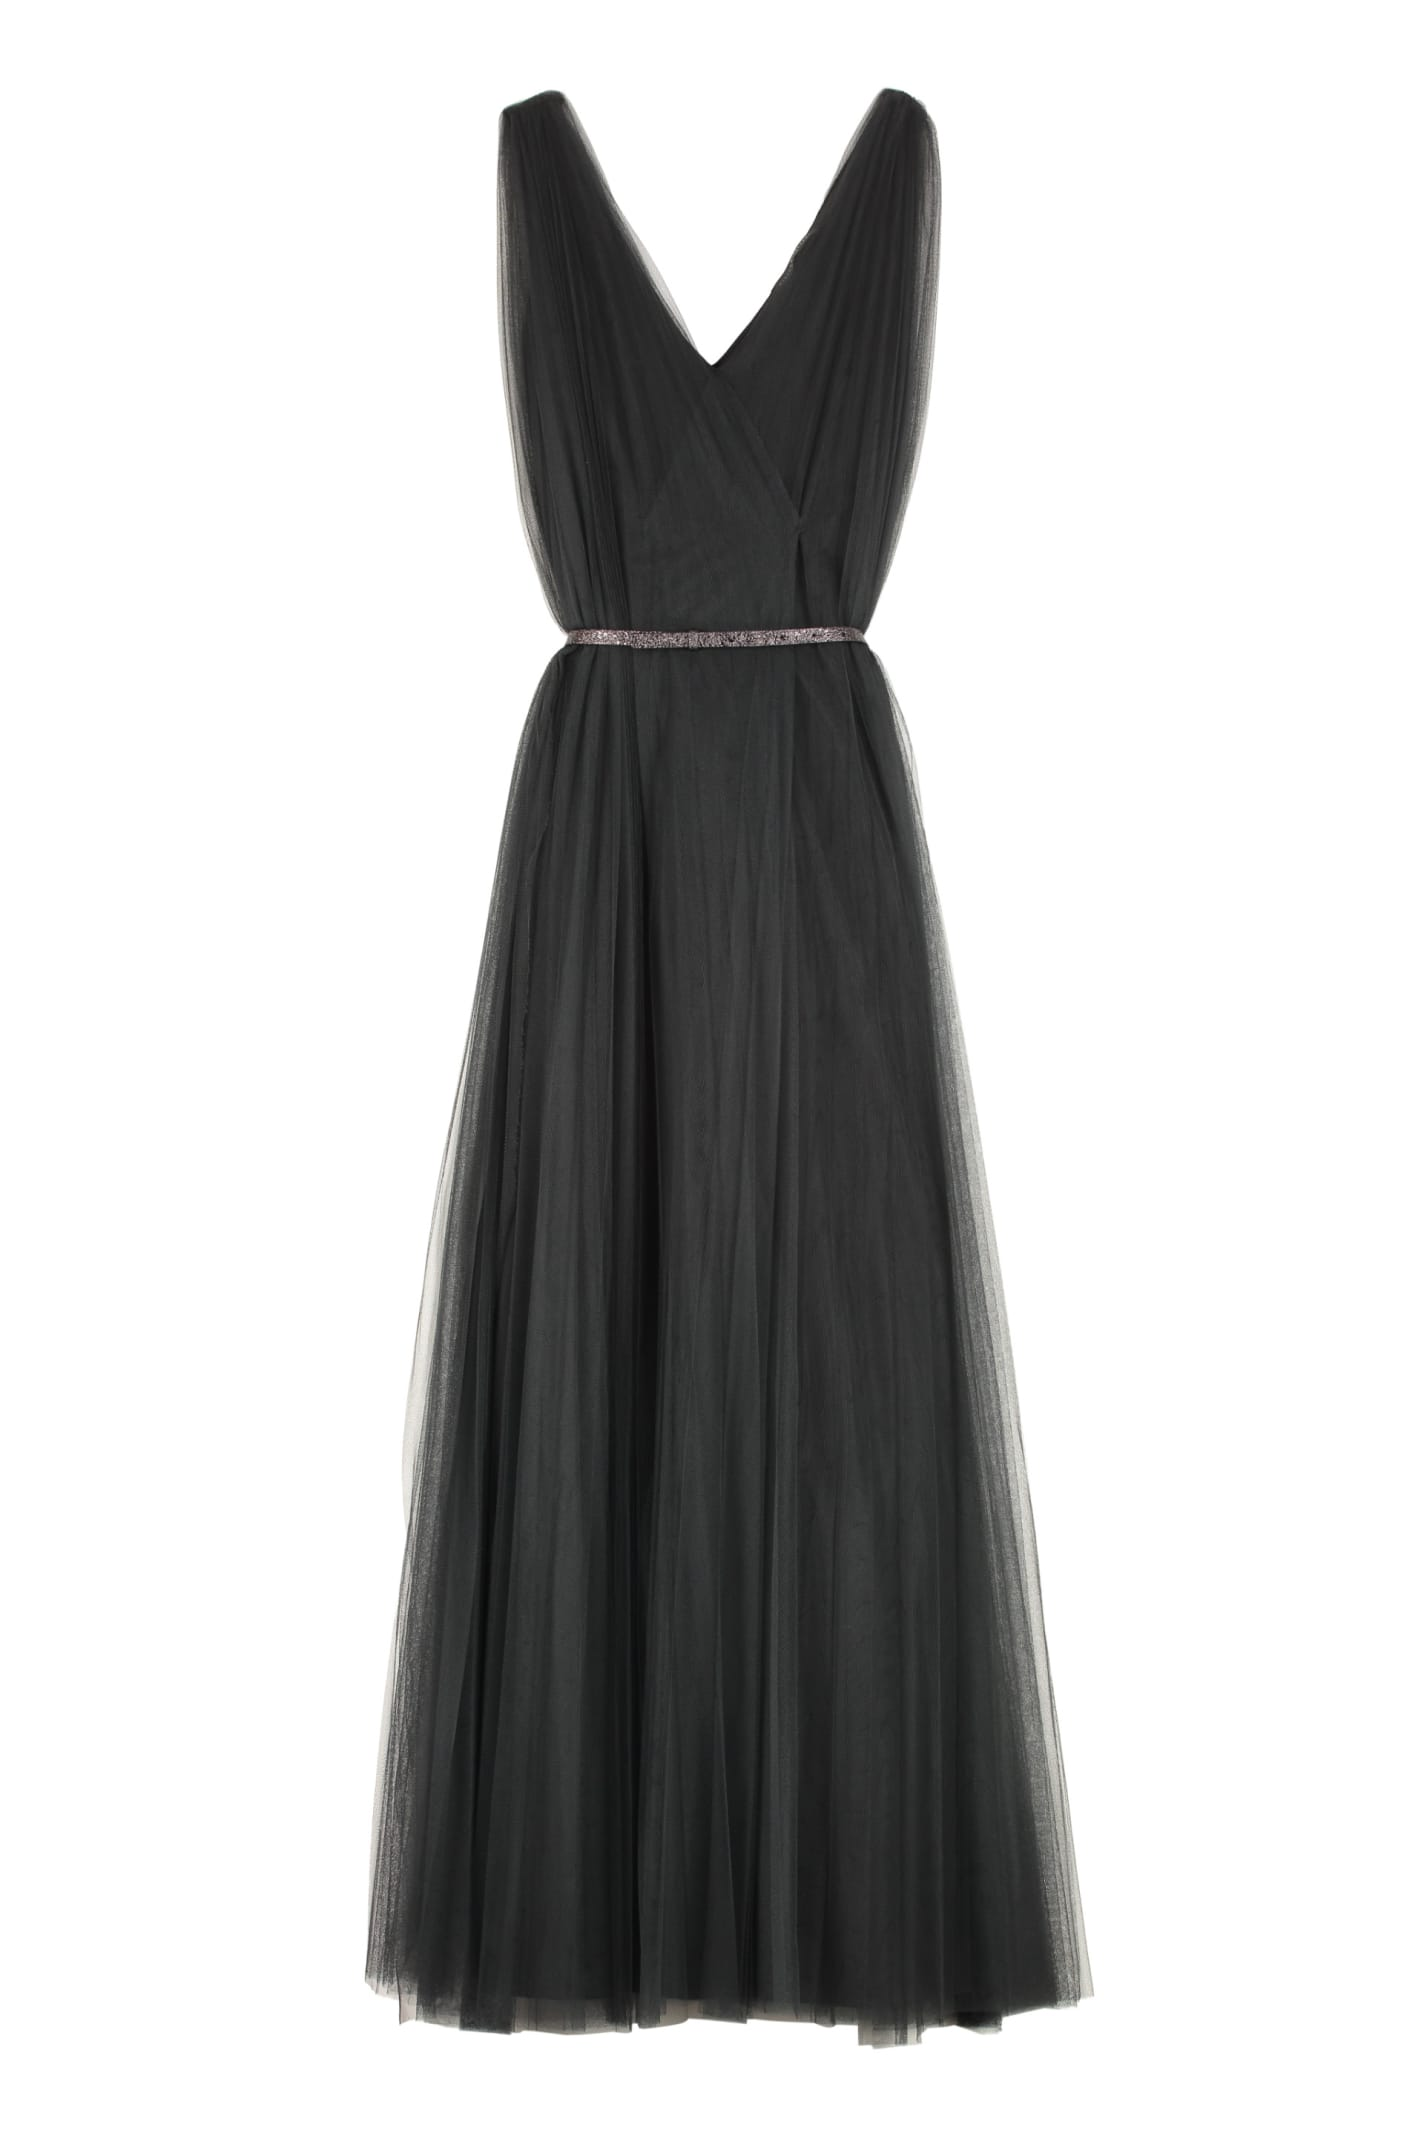 Fabiana Filippi Tulle Long Dress